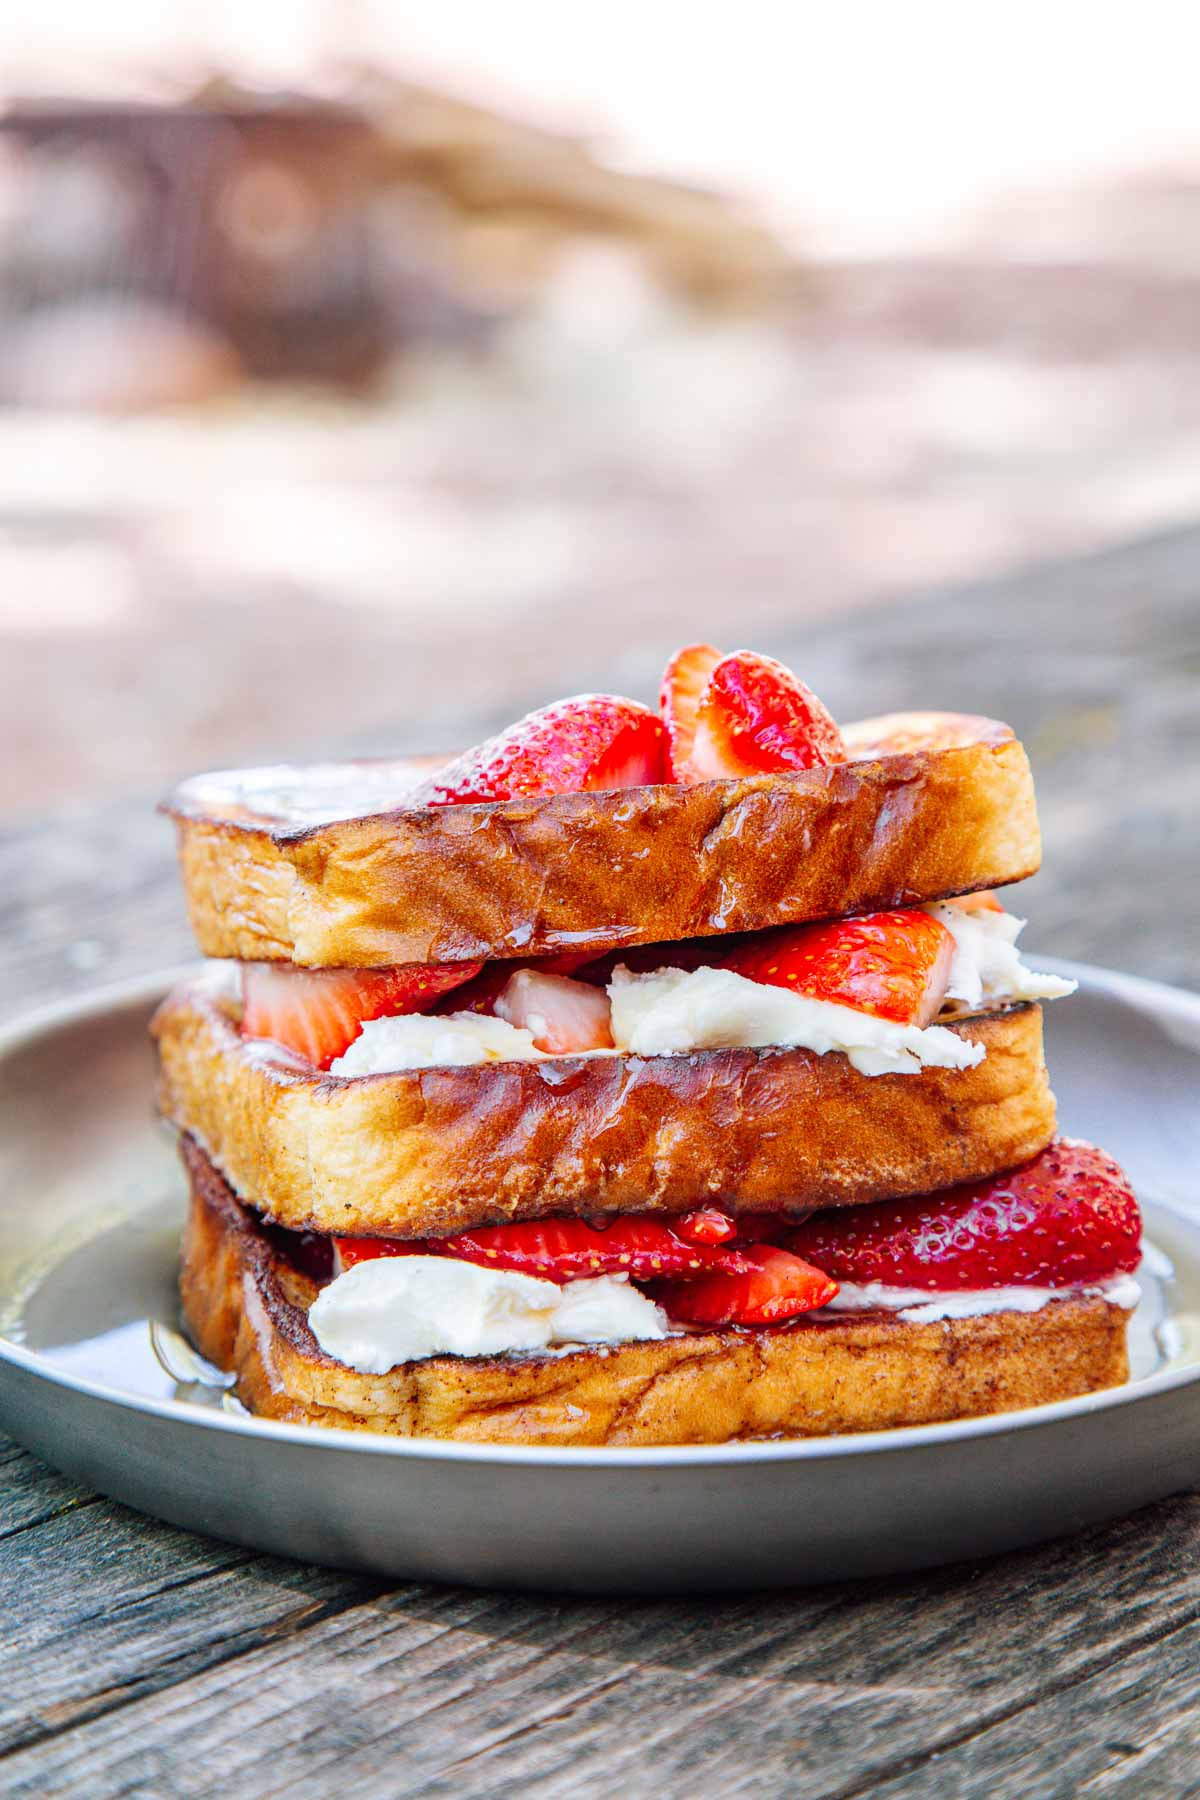 Stuffed french toast topped with strawberries on a camping plate